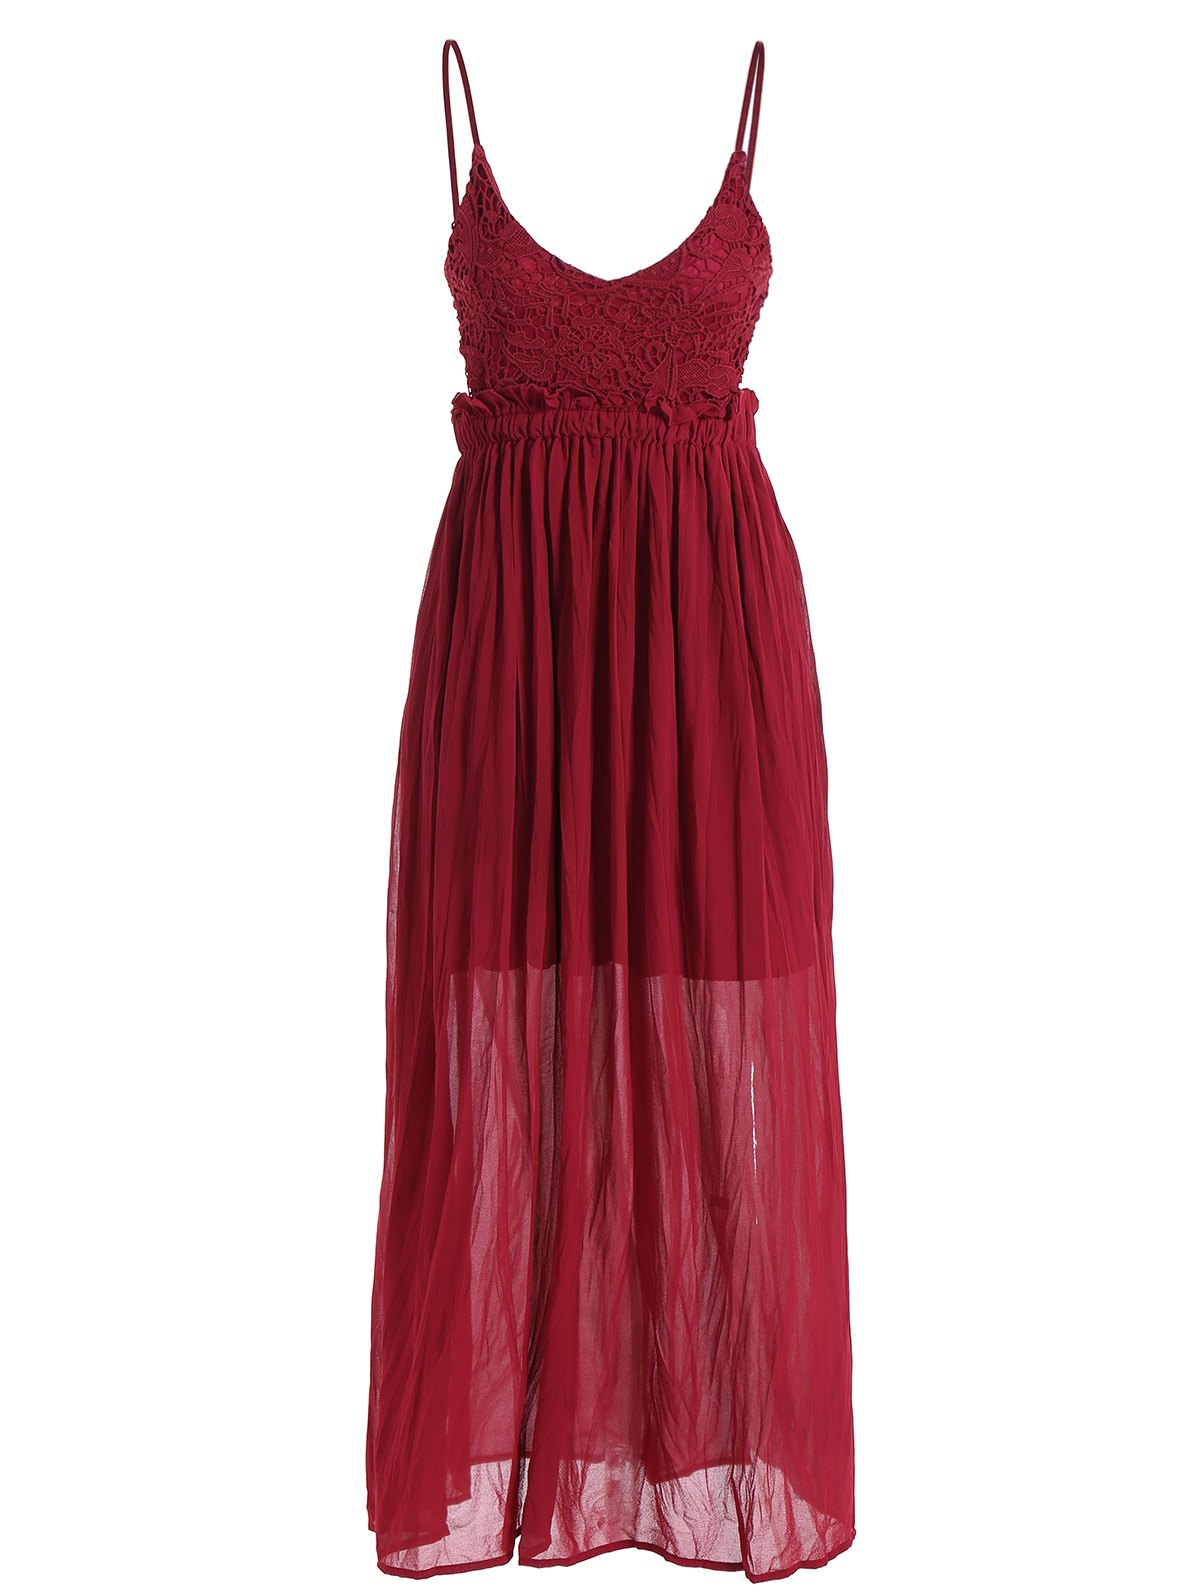 Spaghetti Strap Plunge Neck Maxi Chiffon Dress - WINE RED M